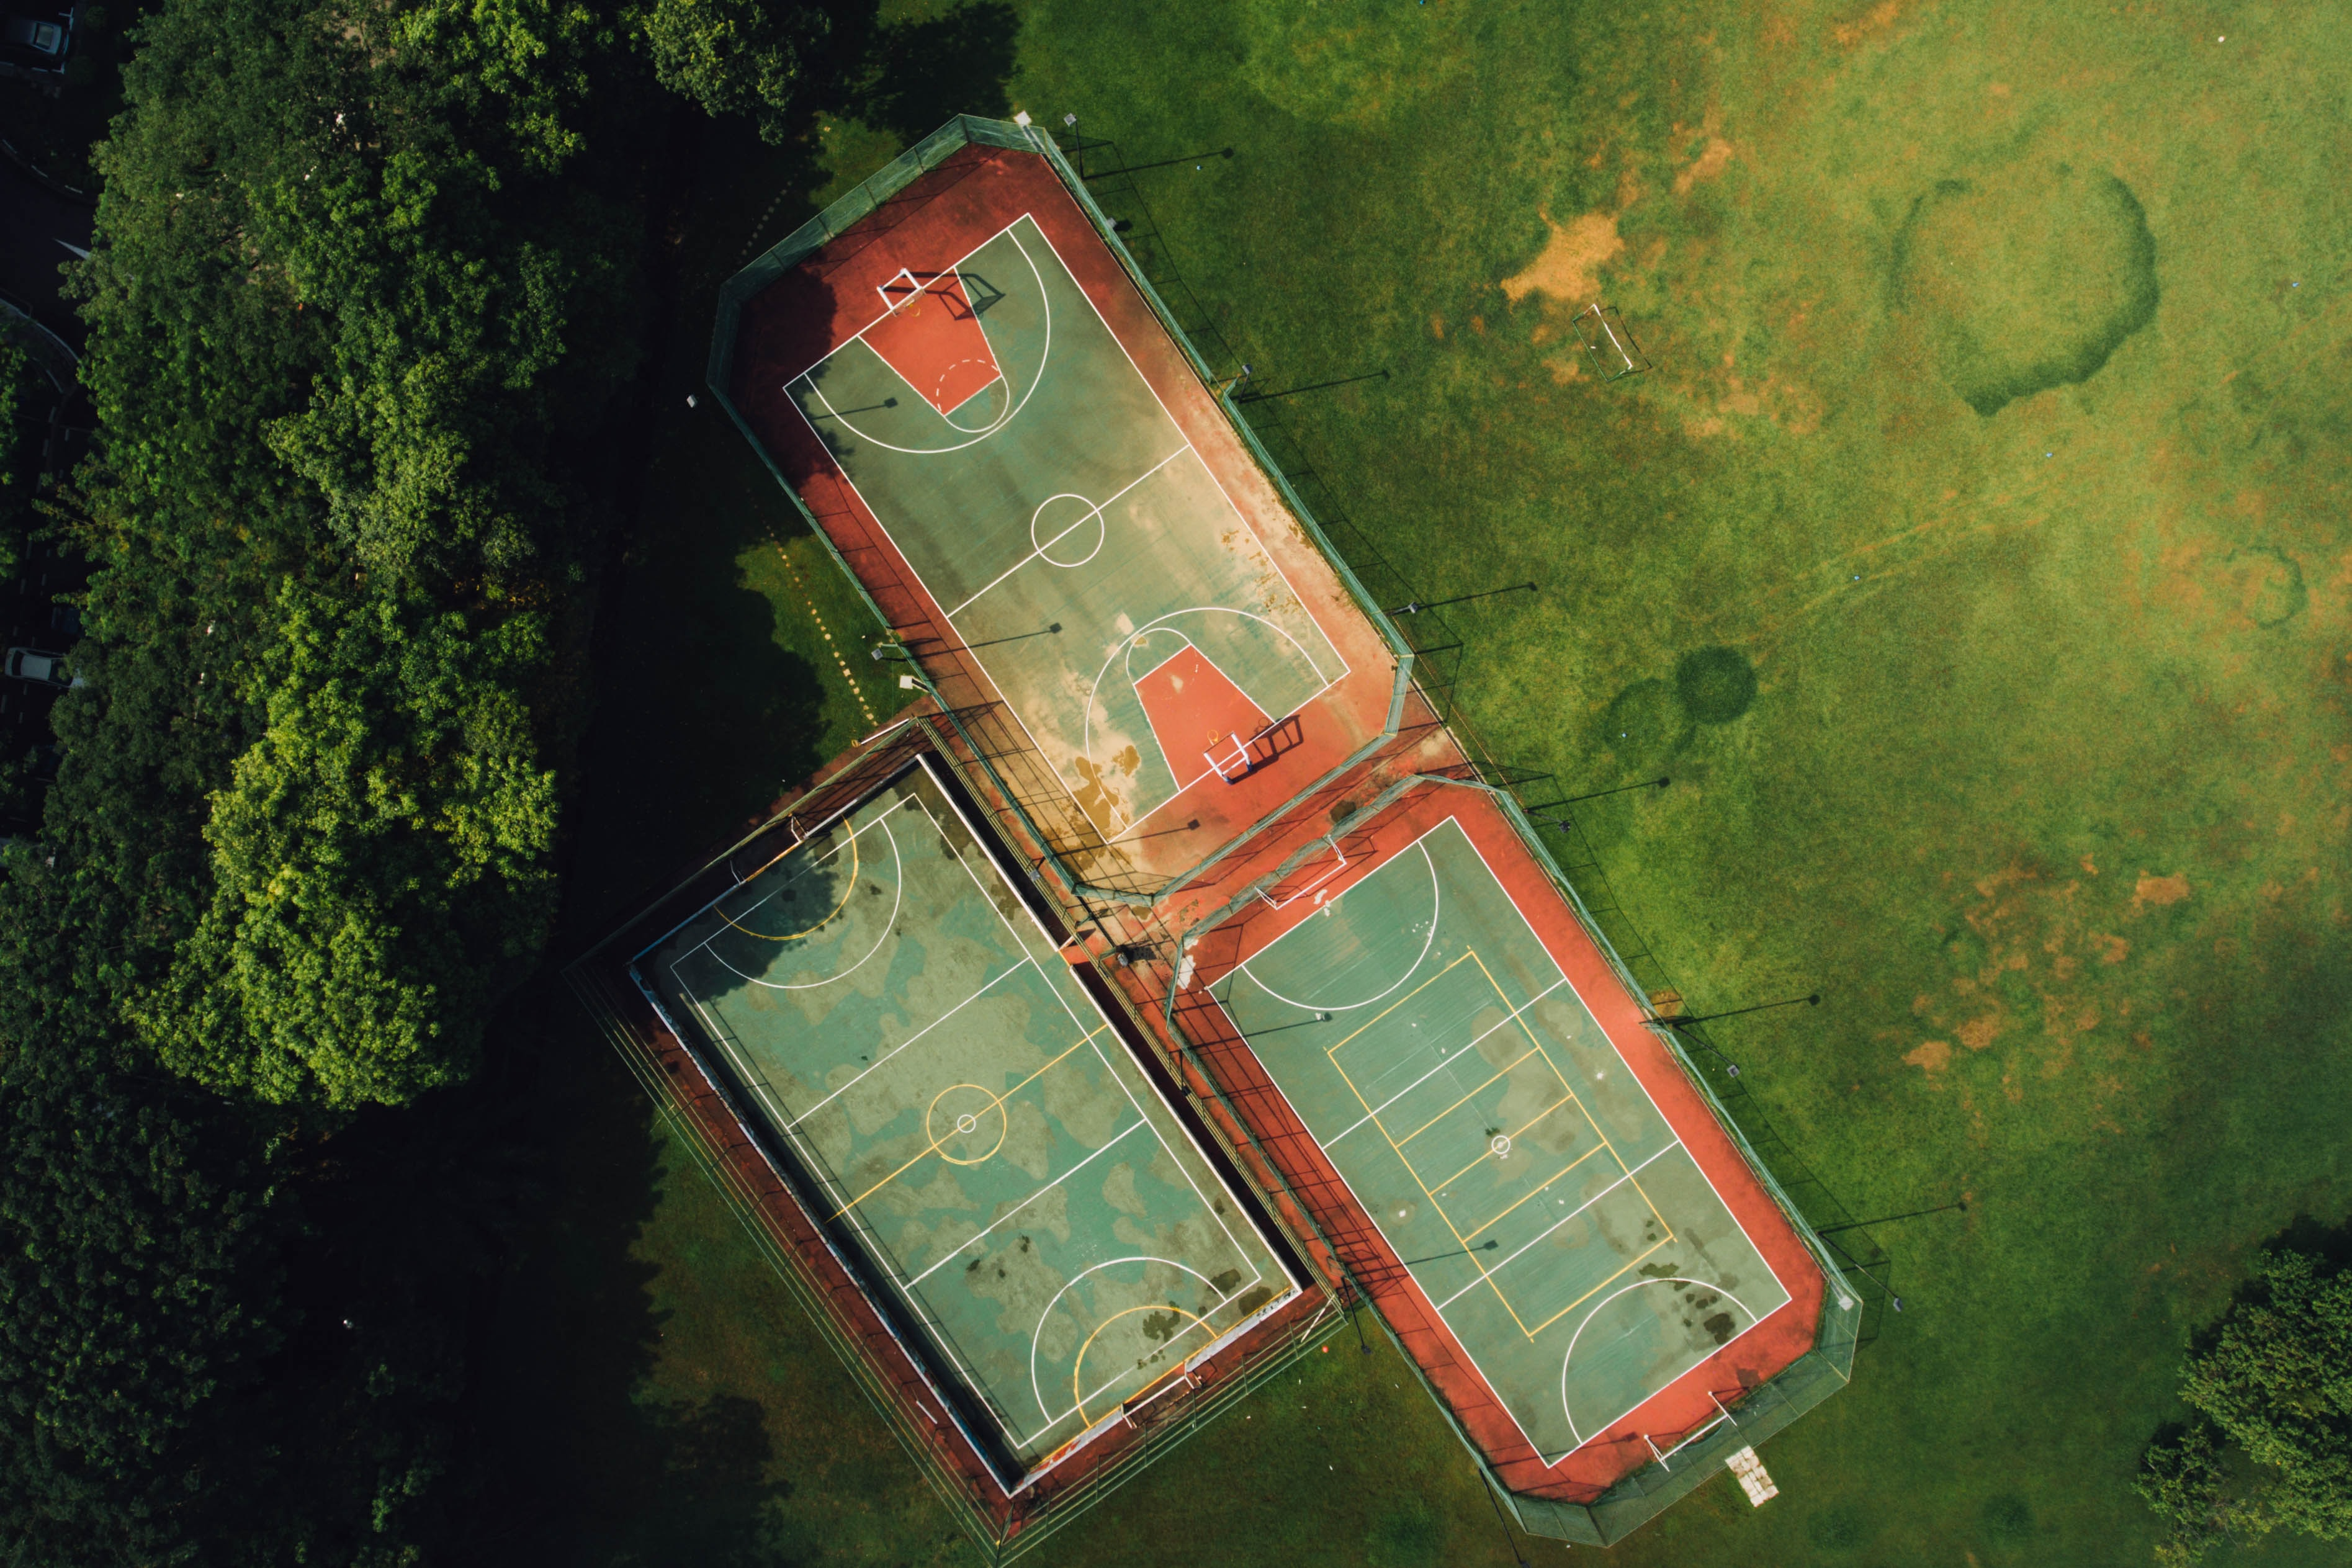 A drone shot of three sports fields in a park